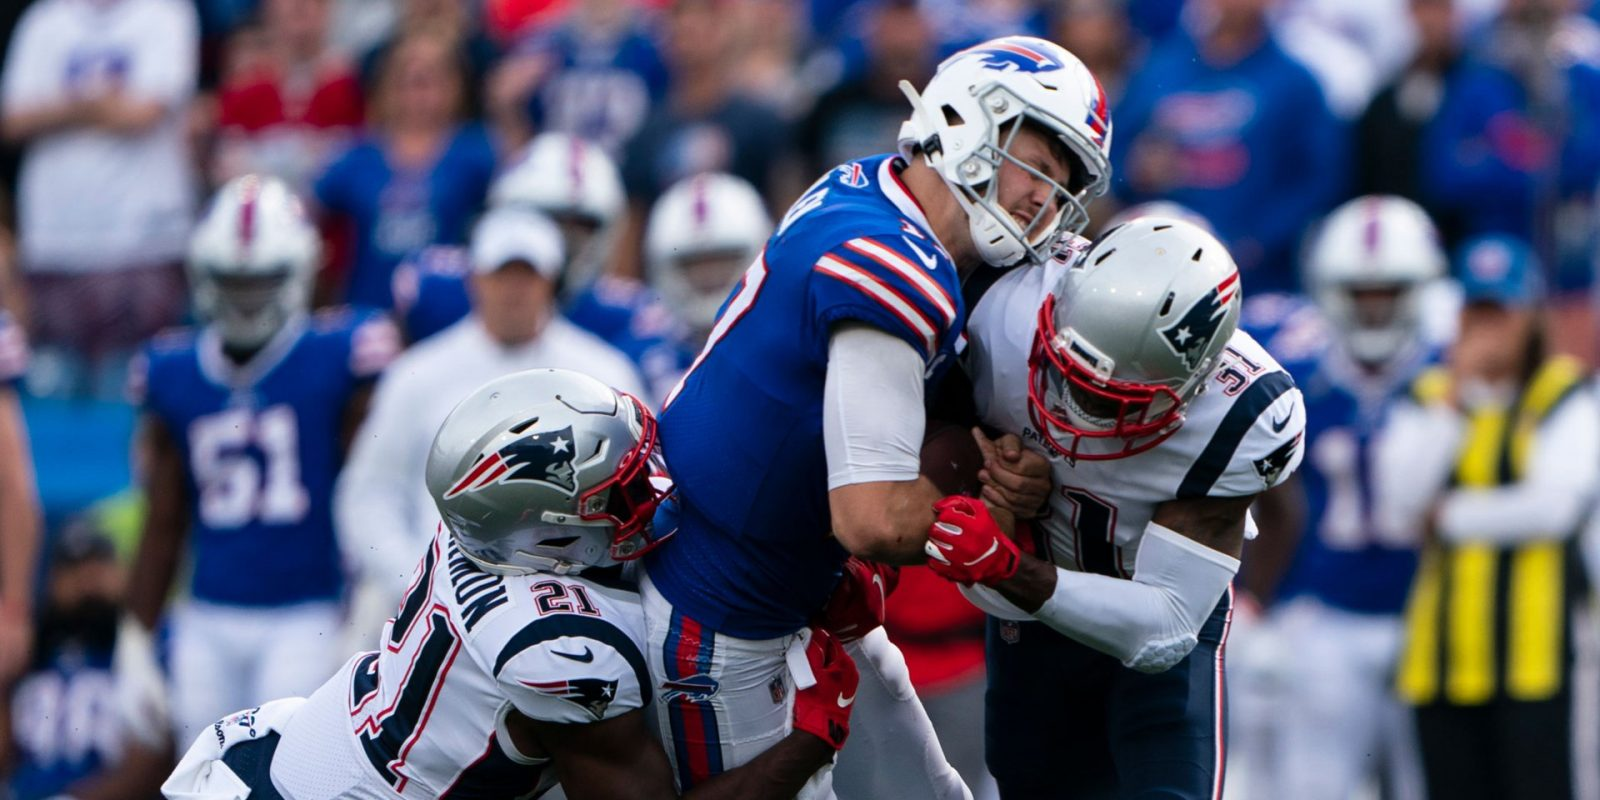 Bills defender accuses NFL of double-standard over Tom Brady after vicious hit on Josh Allen